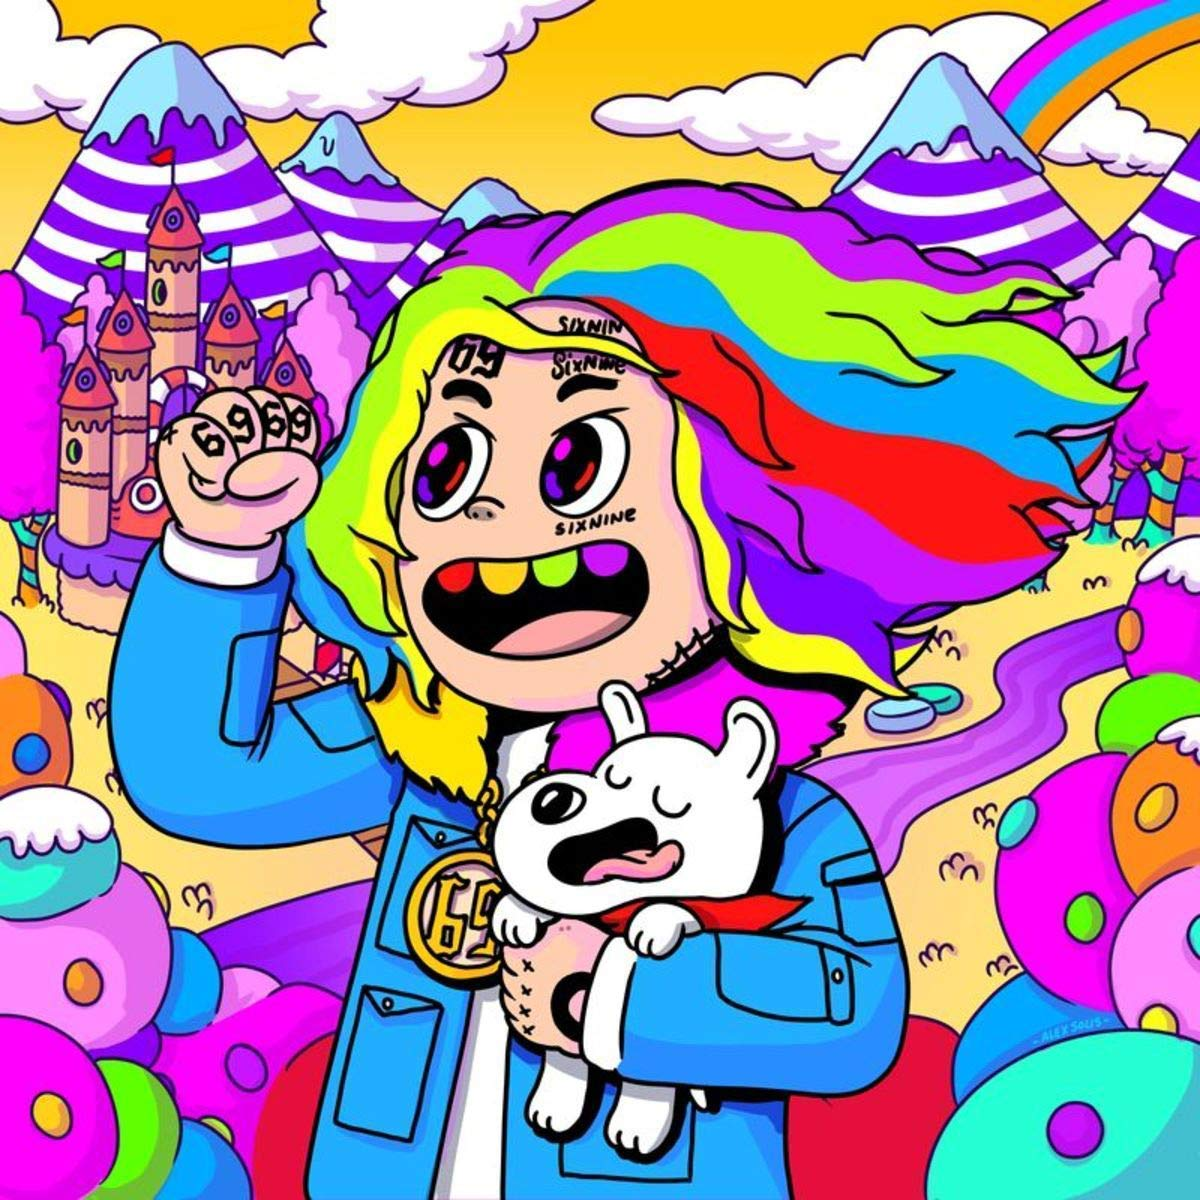 Ultimate Poster Album Cover Poster Thick 6IX9INE Graduation 12x18 inch Rolled